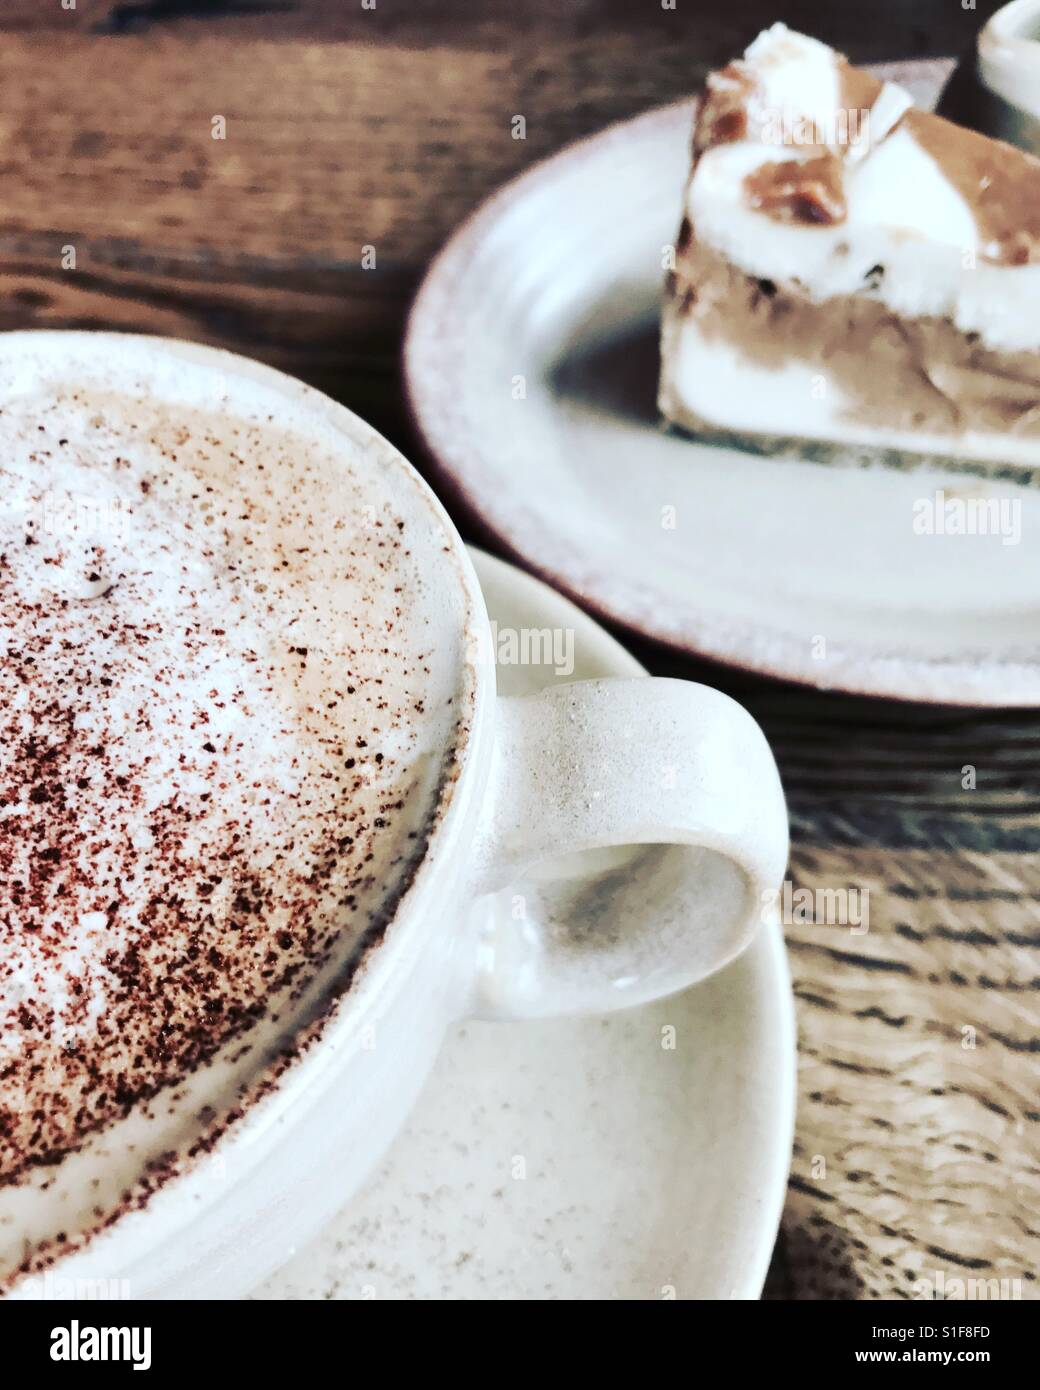 Cappuccino and cheese cake - Stock Image